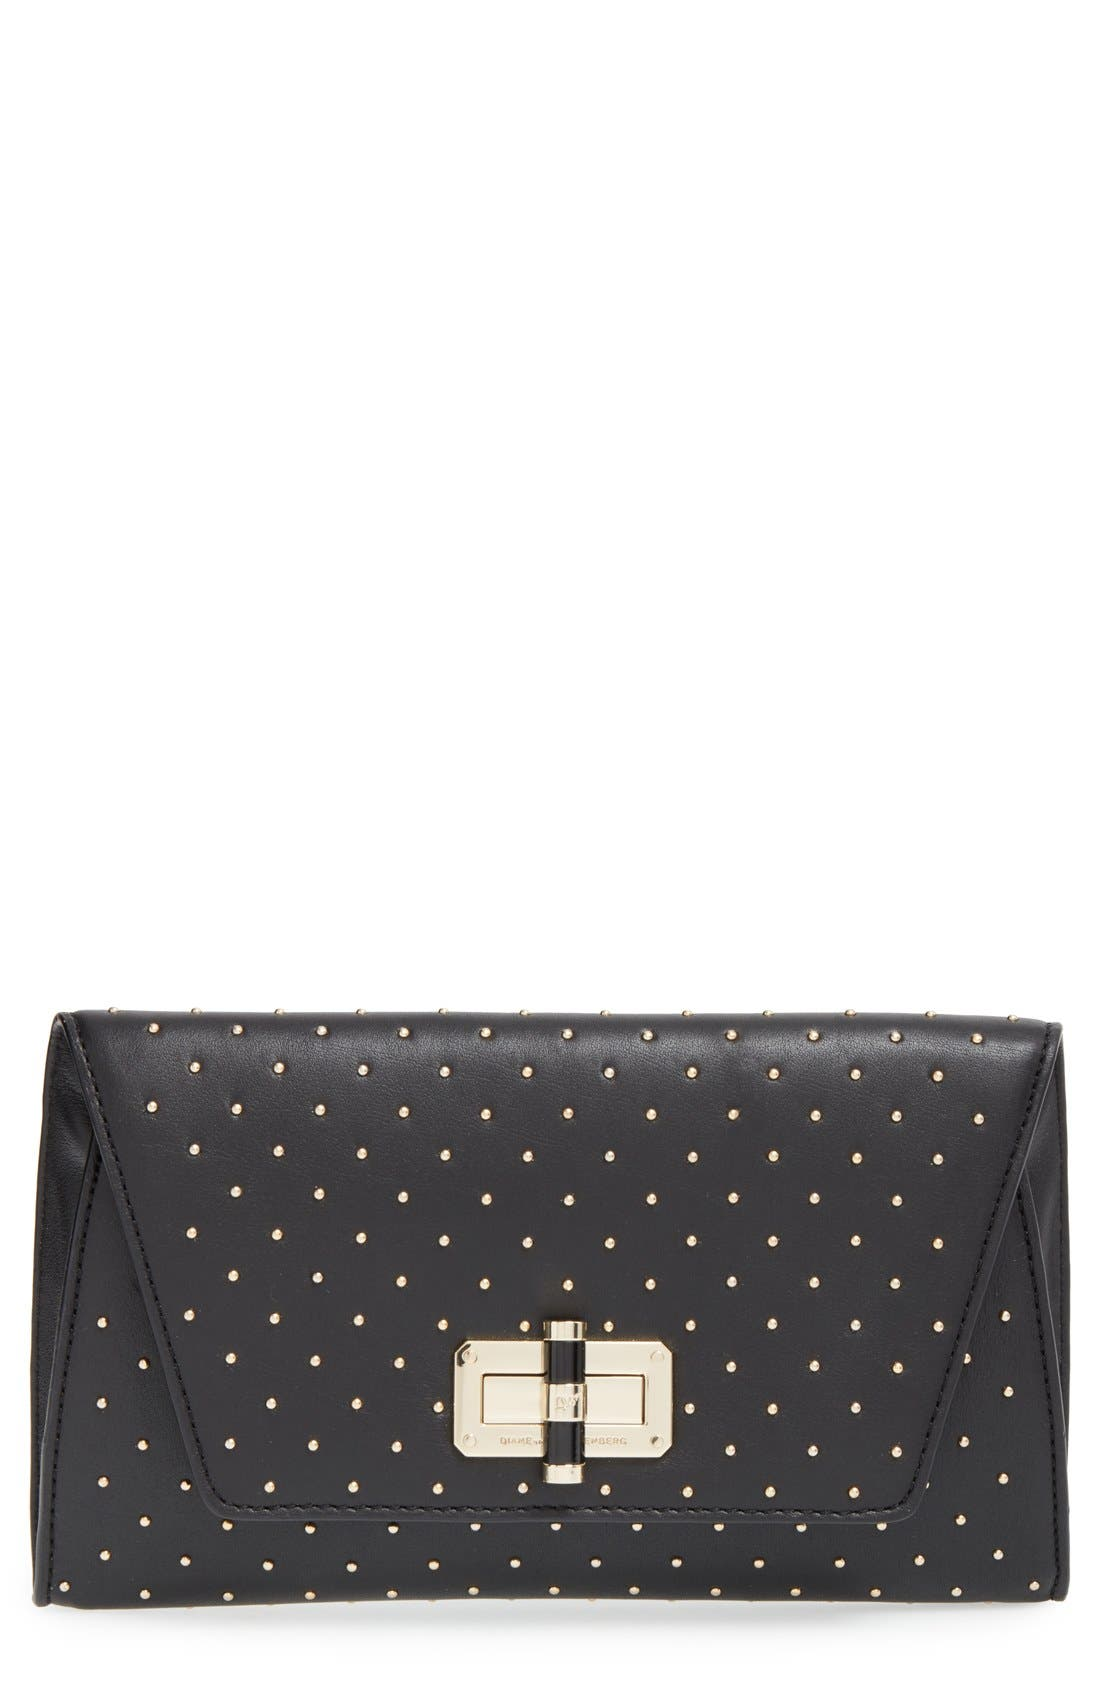 Main Image - Diane von Furstenberg '440 Glory Uptown' Studded Leather Clutch